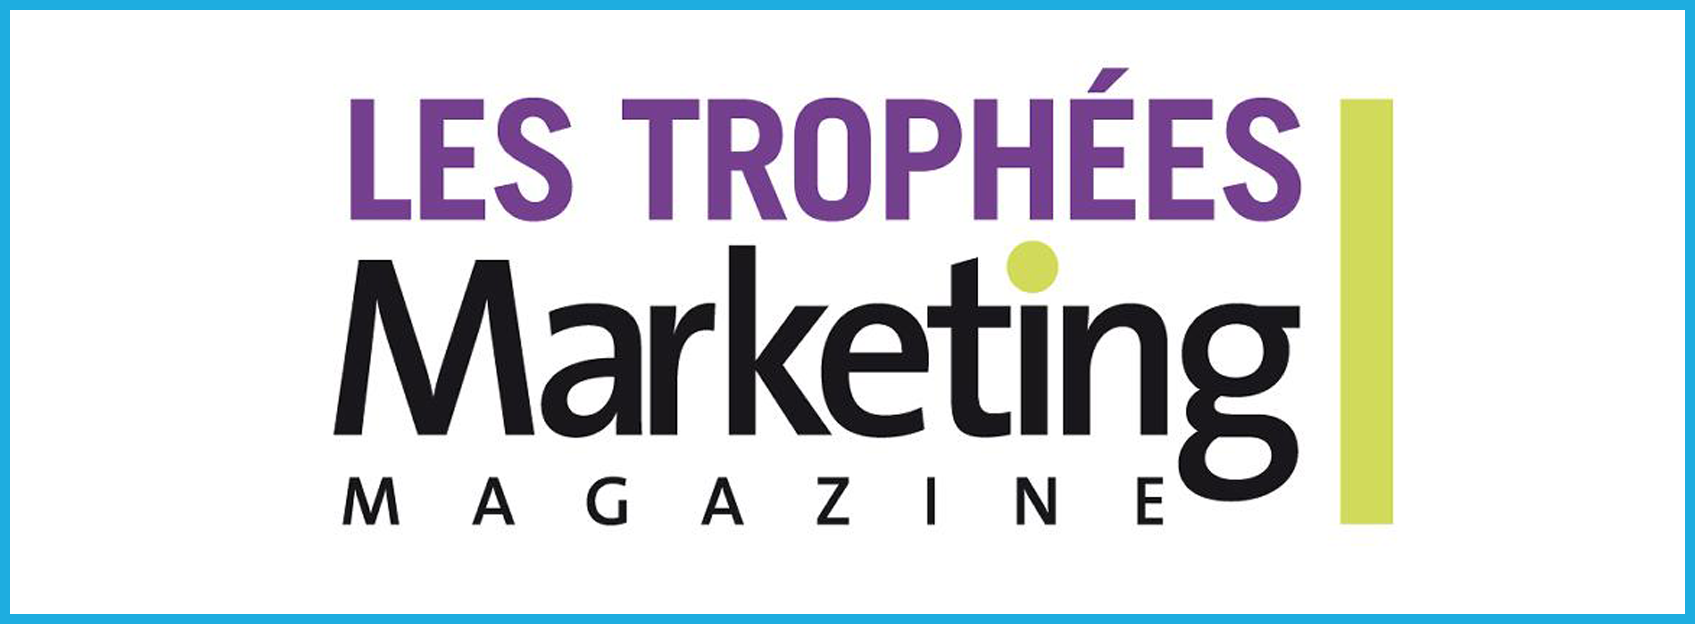 Preis für respondi & Sorgem bei den Marketing Magazine Awards